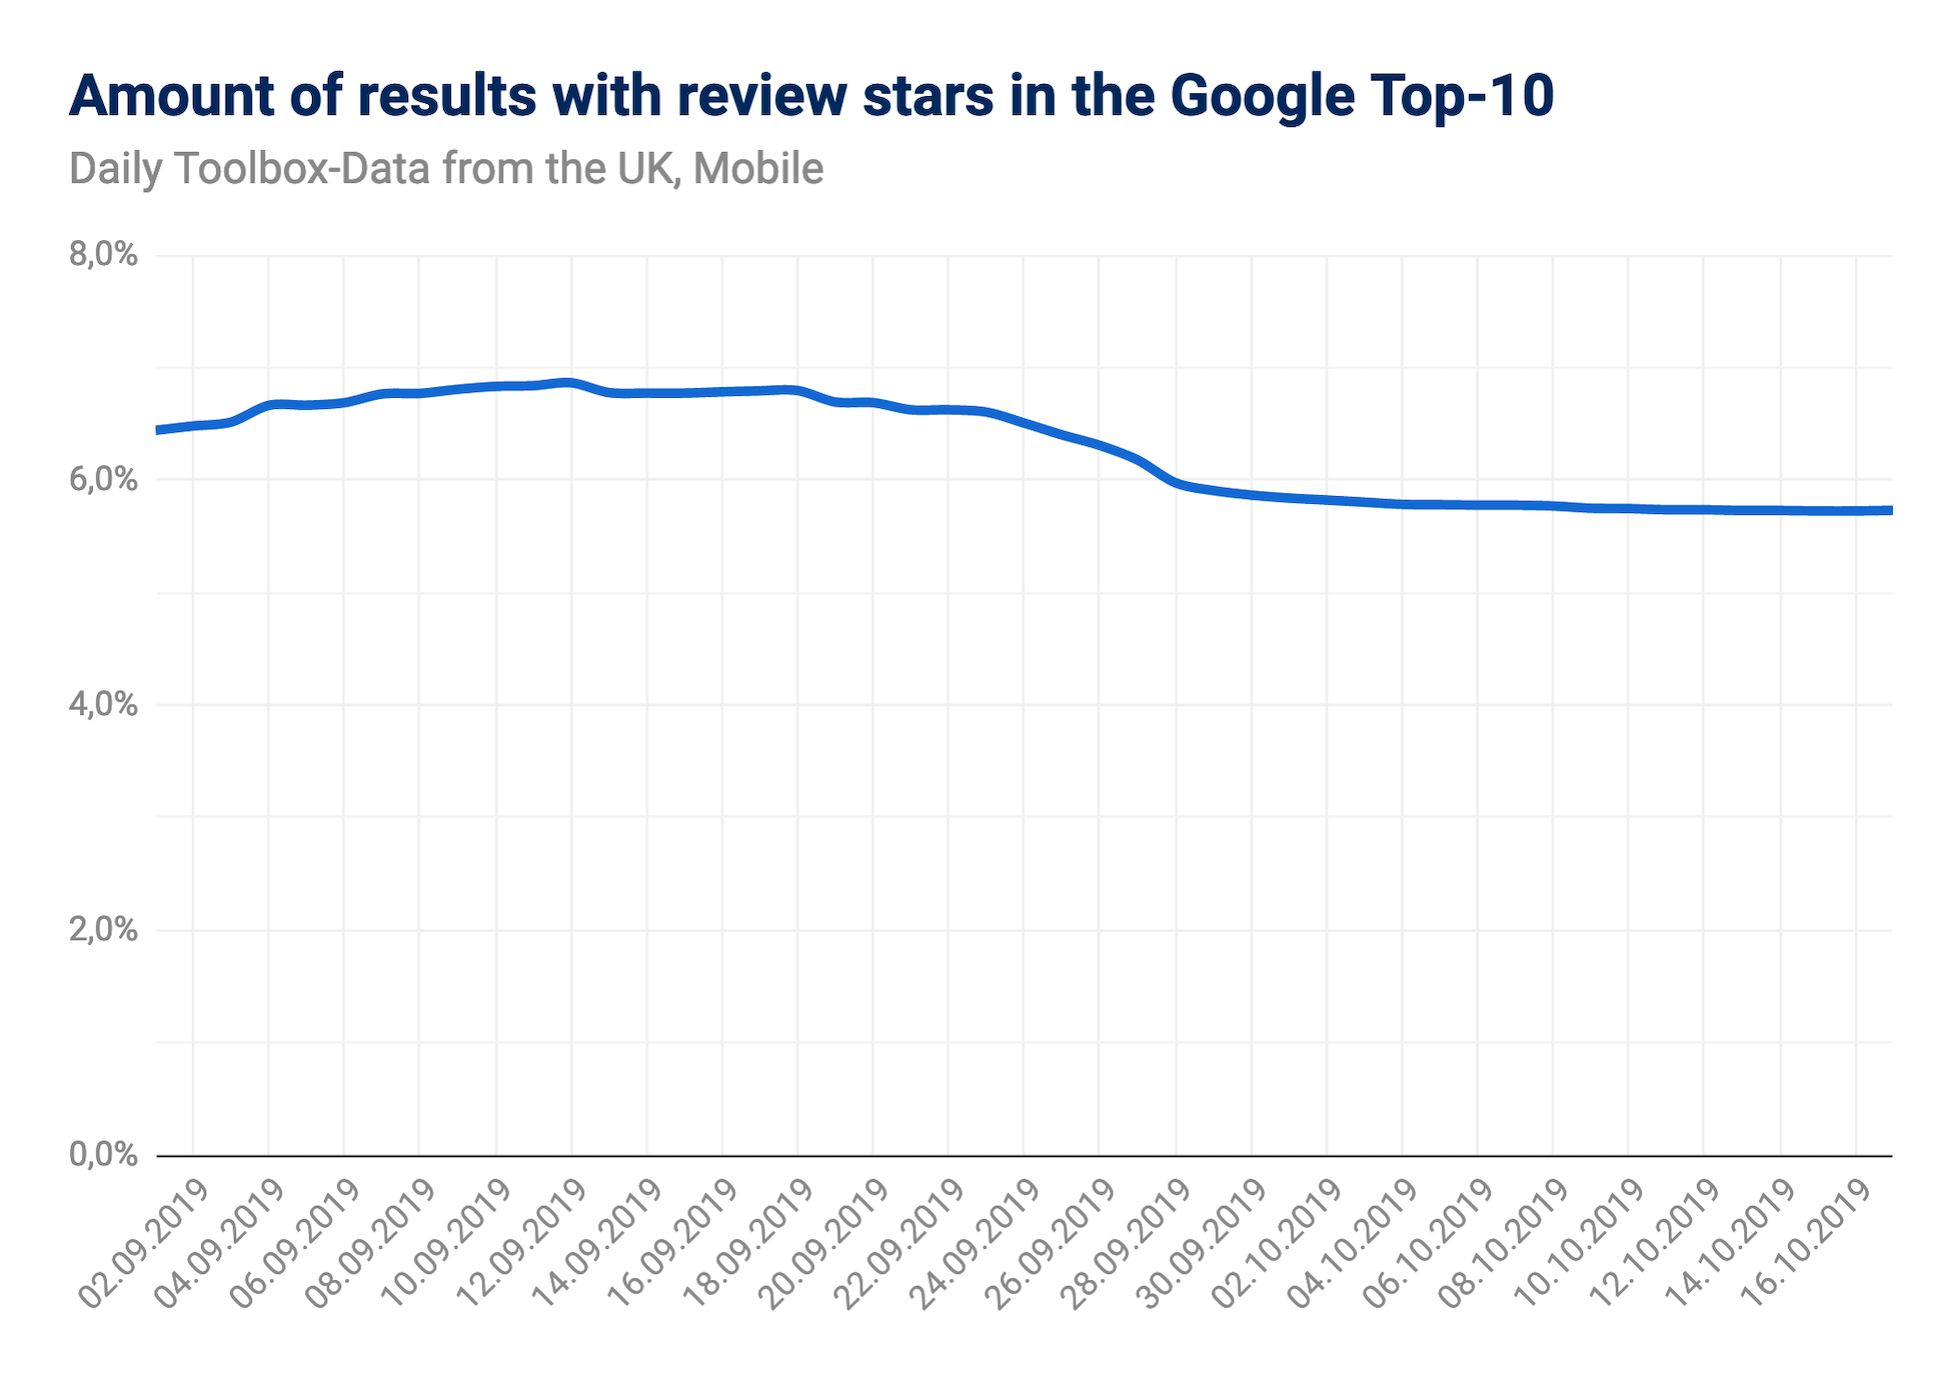 Screenshot showing the chart of the amount of results with review stars in the Google mobile Top-10 for the UK.